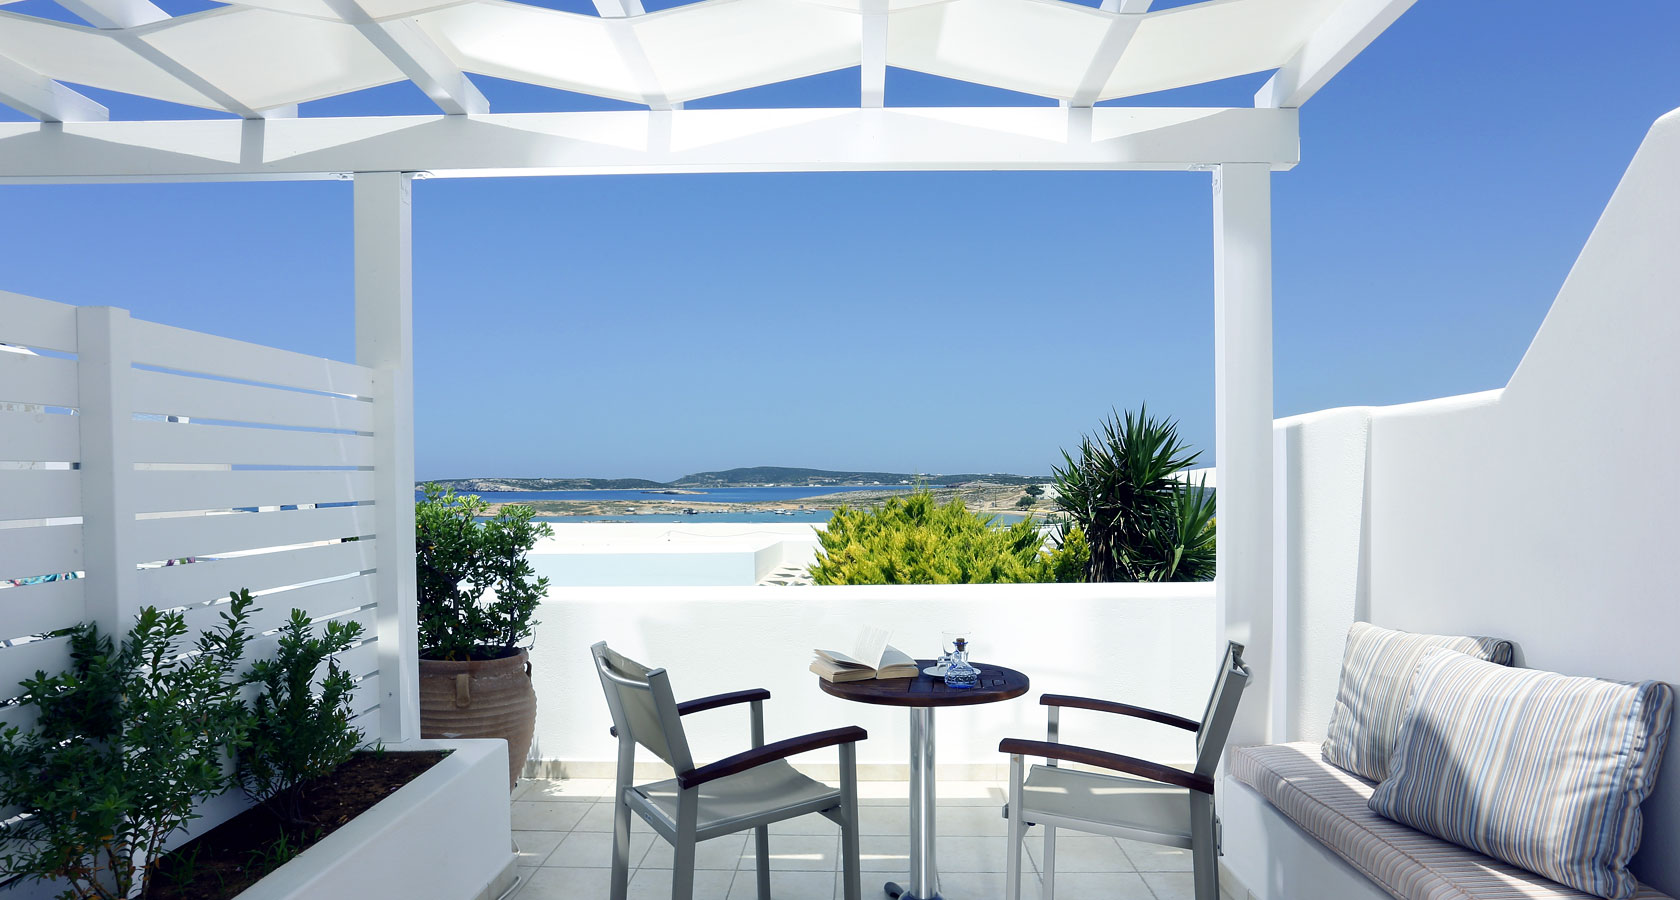 Sea View from Stelia Mare Hotel in Paros Greece